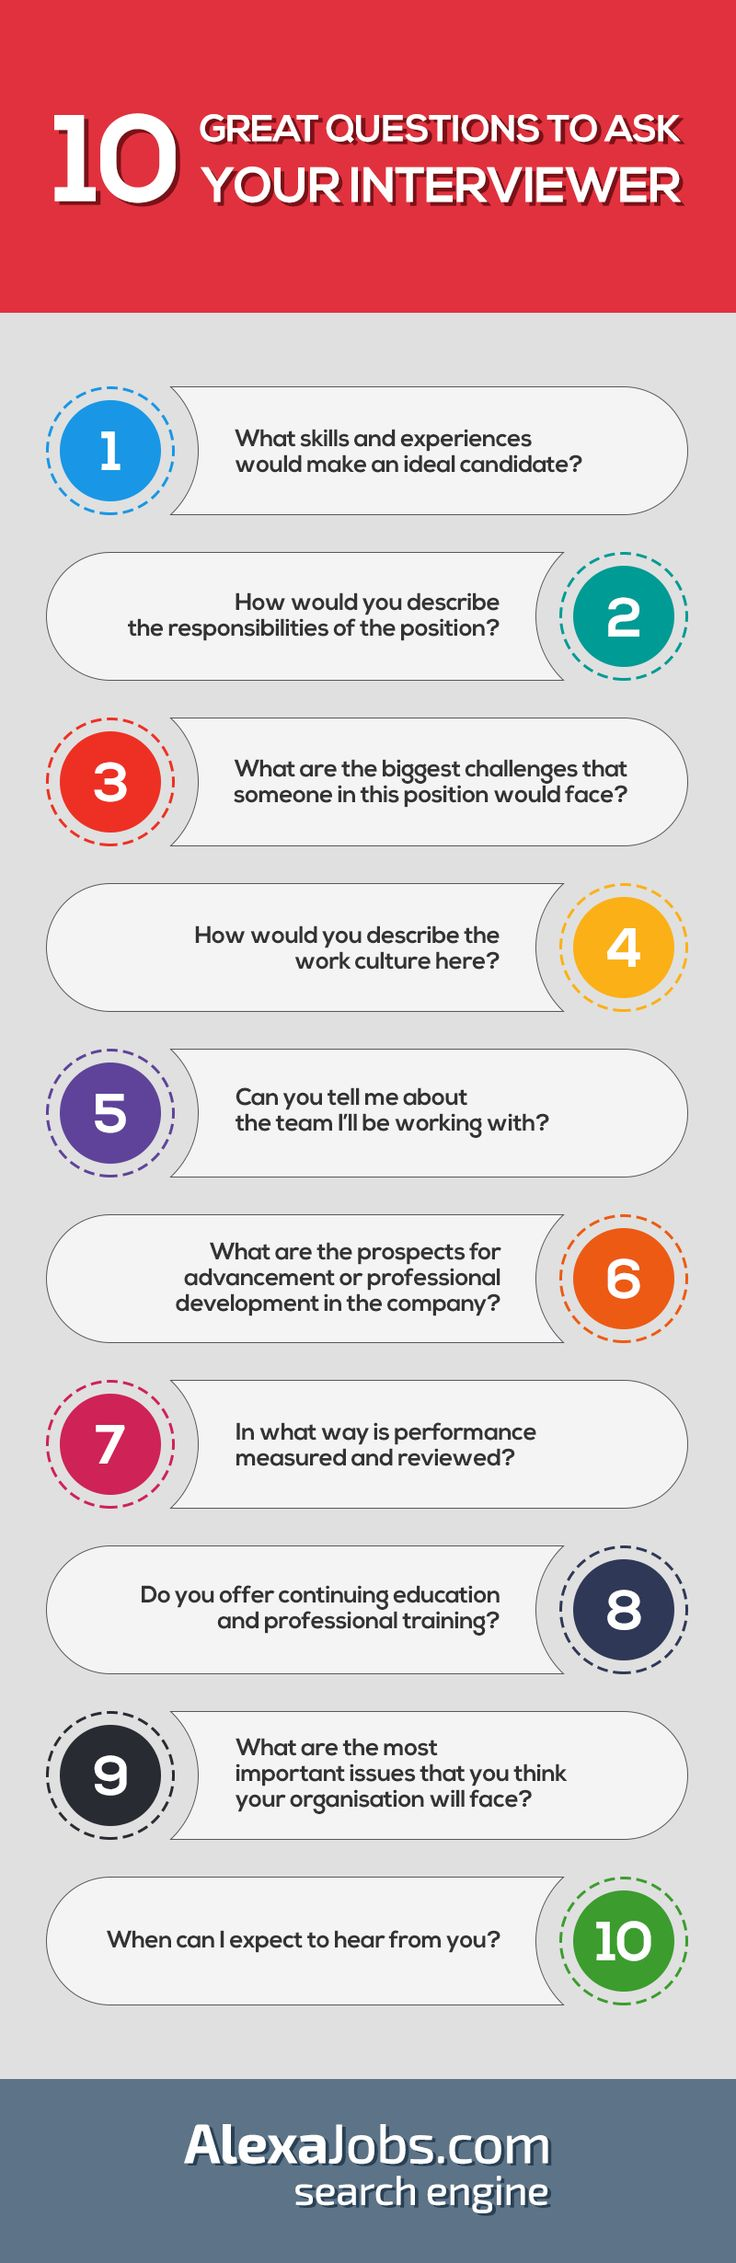 best ideas about questions for job interview 10 great questions to ask your interviewer infographic often job interviews can feel like an interrogation but they re meant to be a conversation